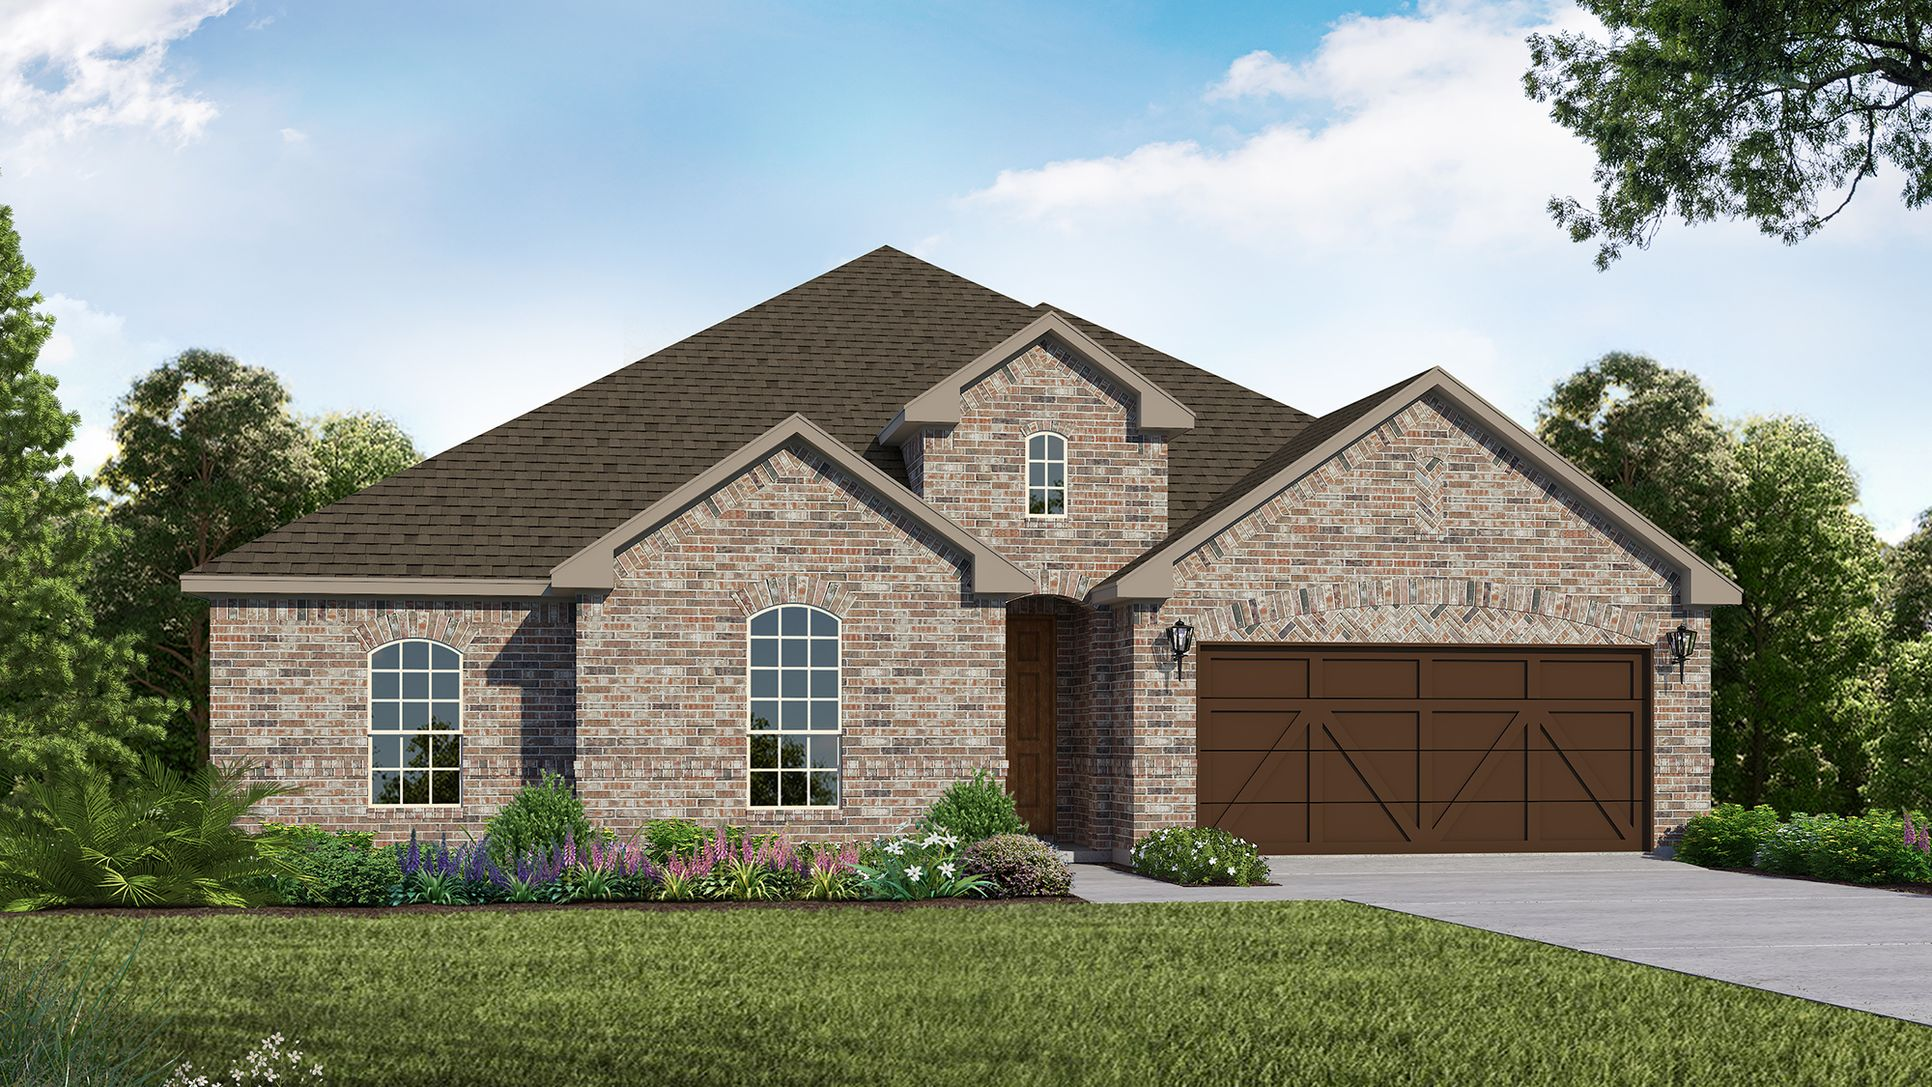 Exterior:Plan 1681 Elevation A by American Legend Homes